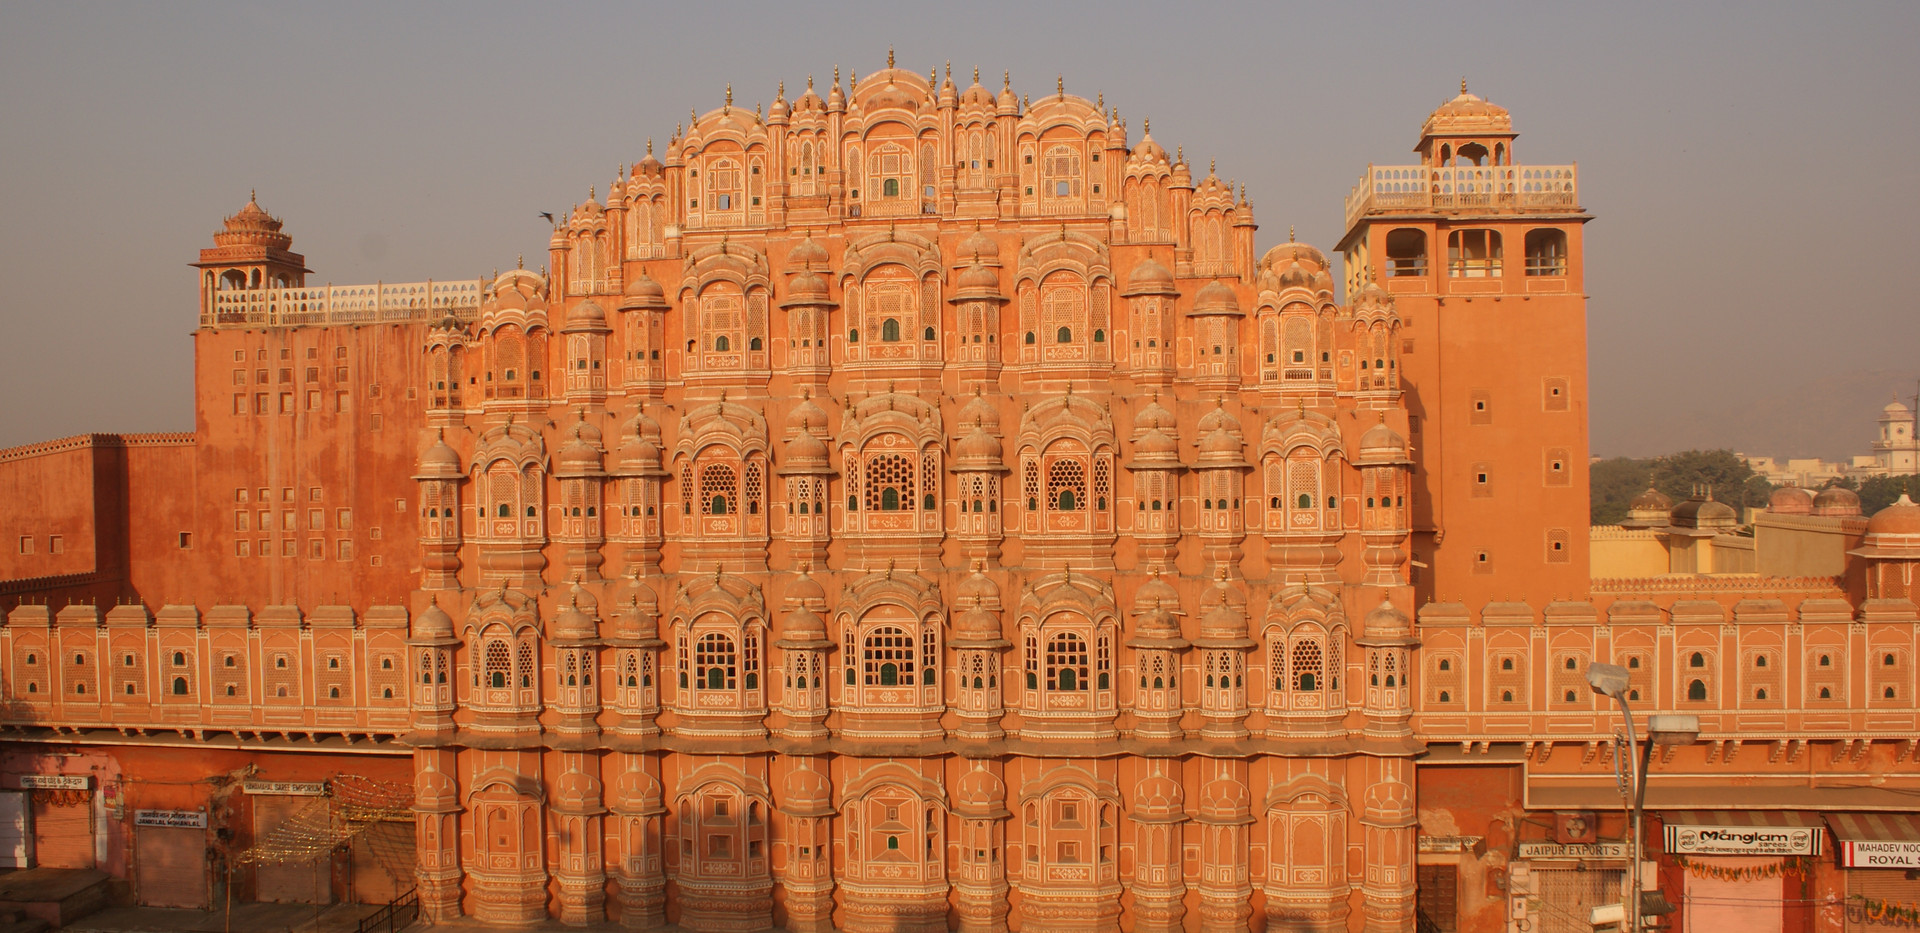 palace of winds2 - jaipur.JPG